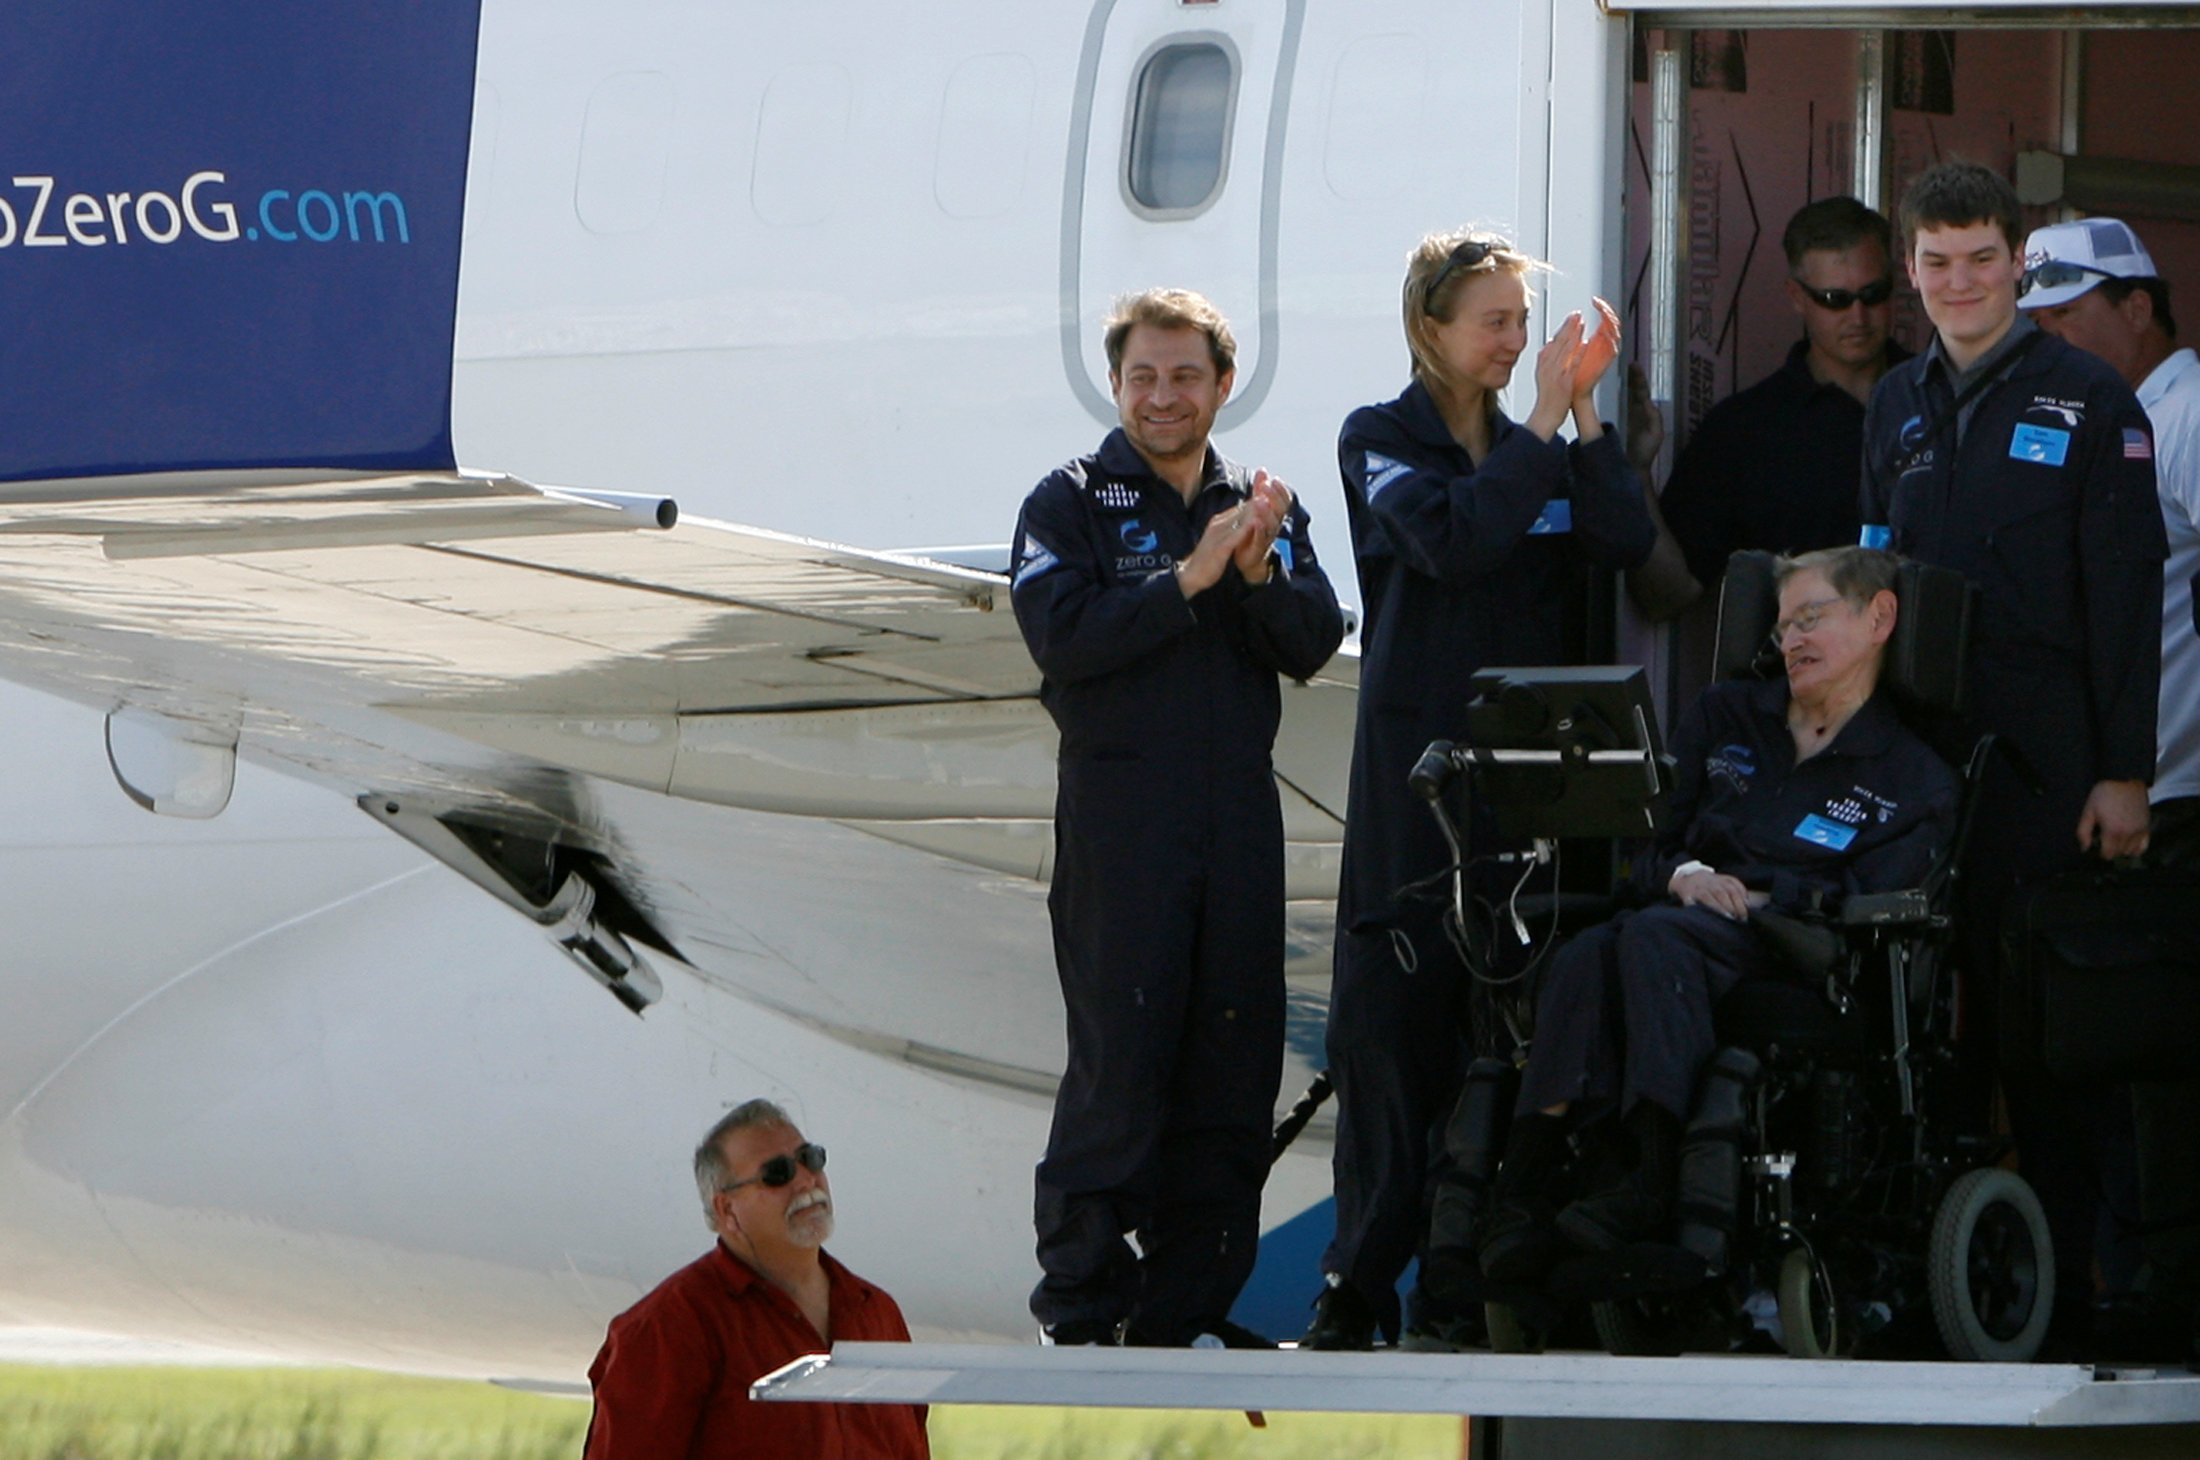 FILE PHOTO: CEO of ZERO-G Peter Diamandis (L) and crew with Professor Stephen Hawking, the world renowned physicist and expert on gravity on a lift truck after his flight at  Kennedy Space Center in Cape Canaveral, Florida